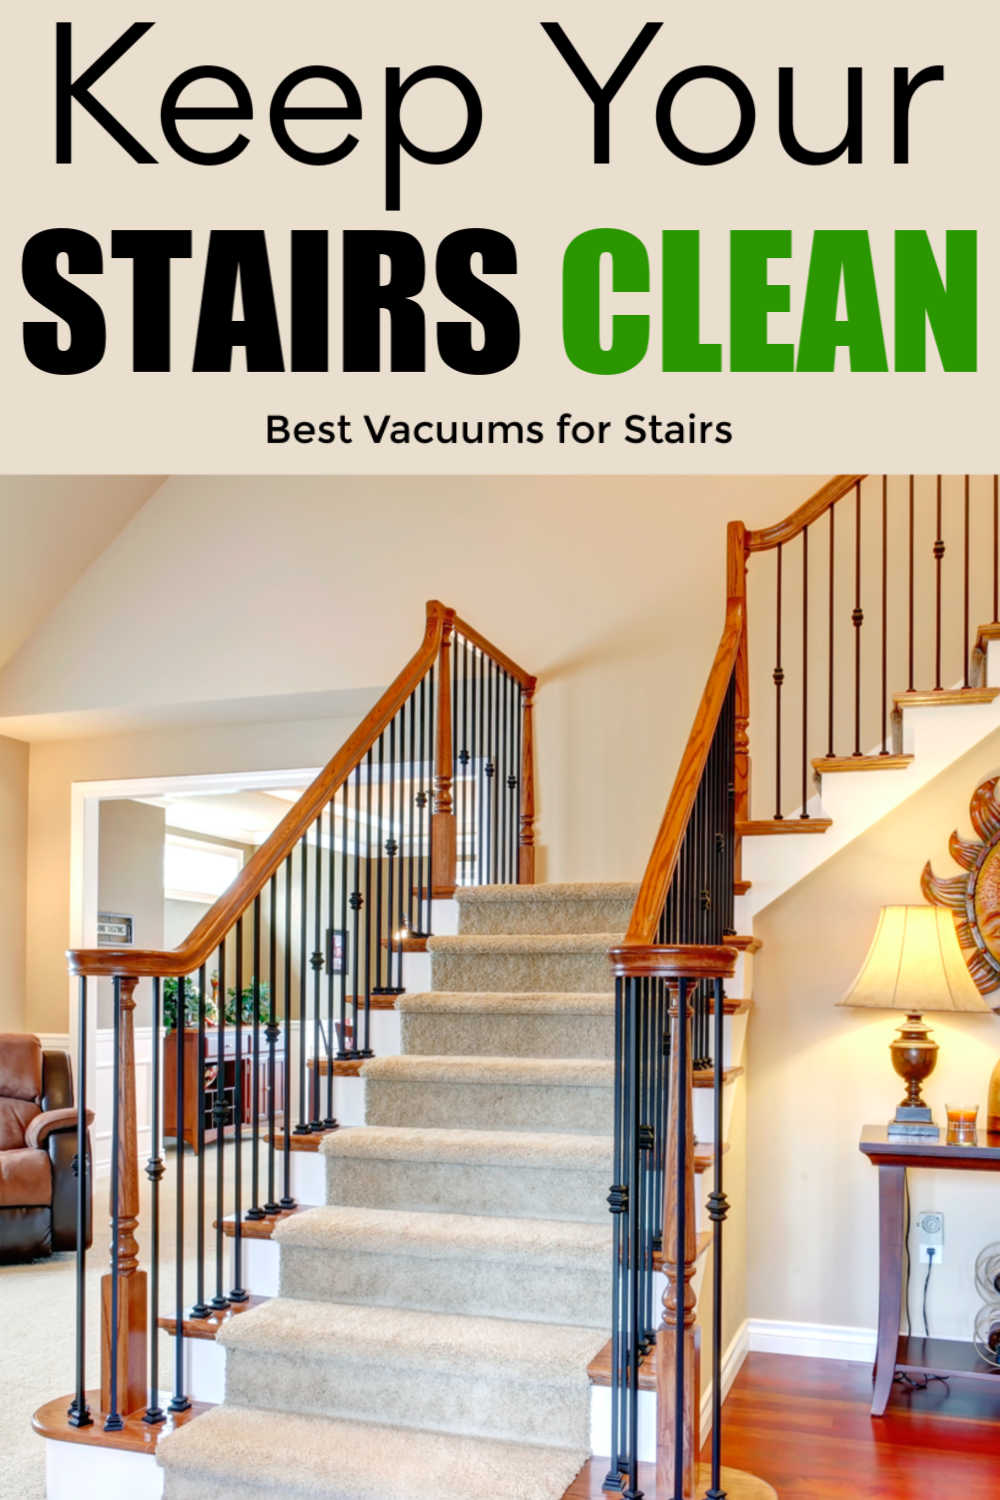 Best Vacuum Cleaners For Stairs – Portable and Cordless